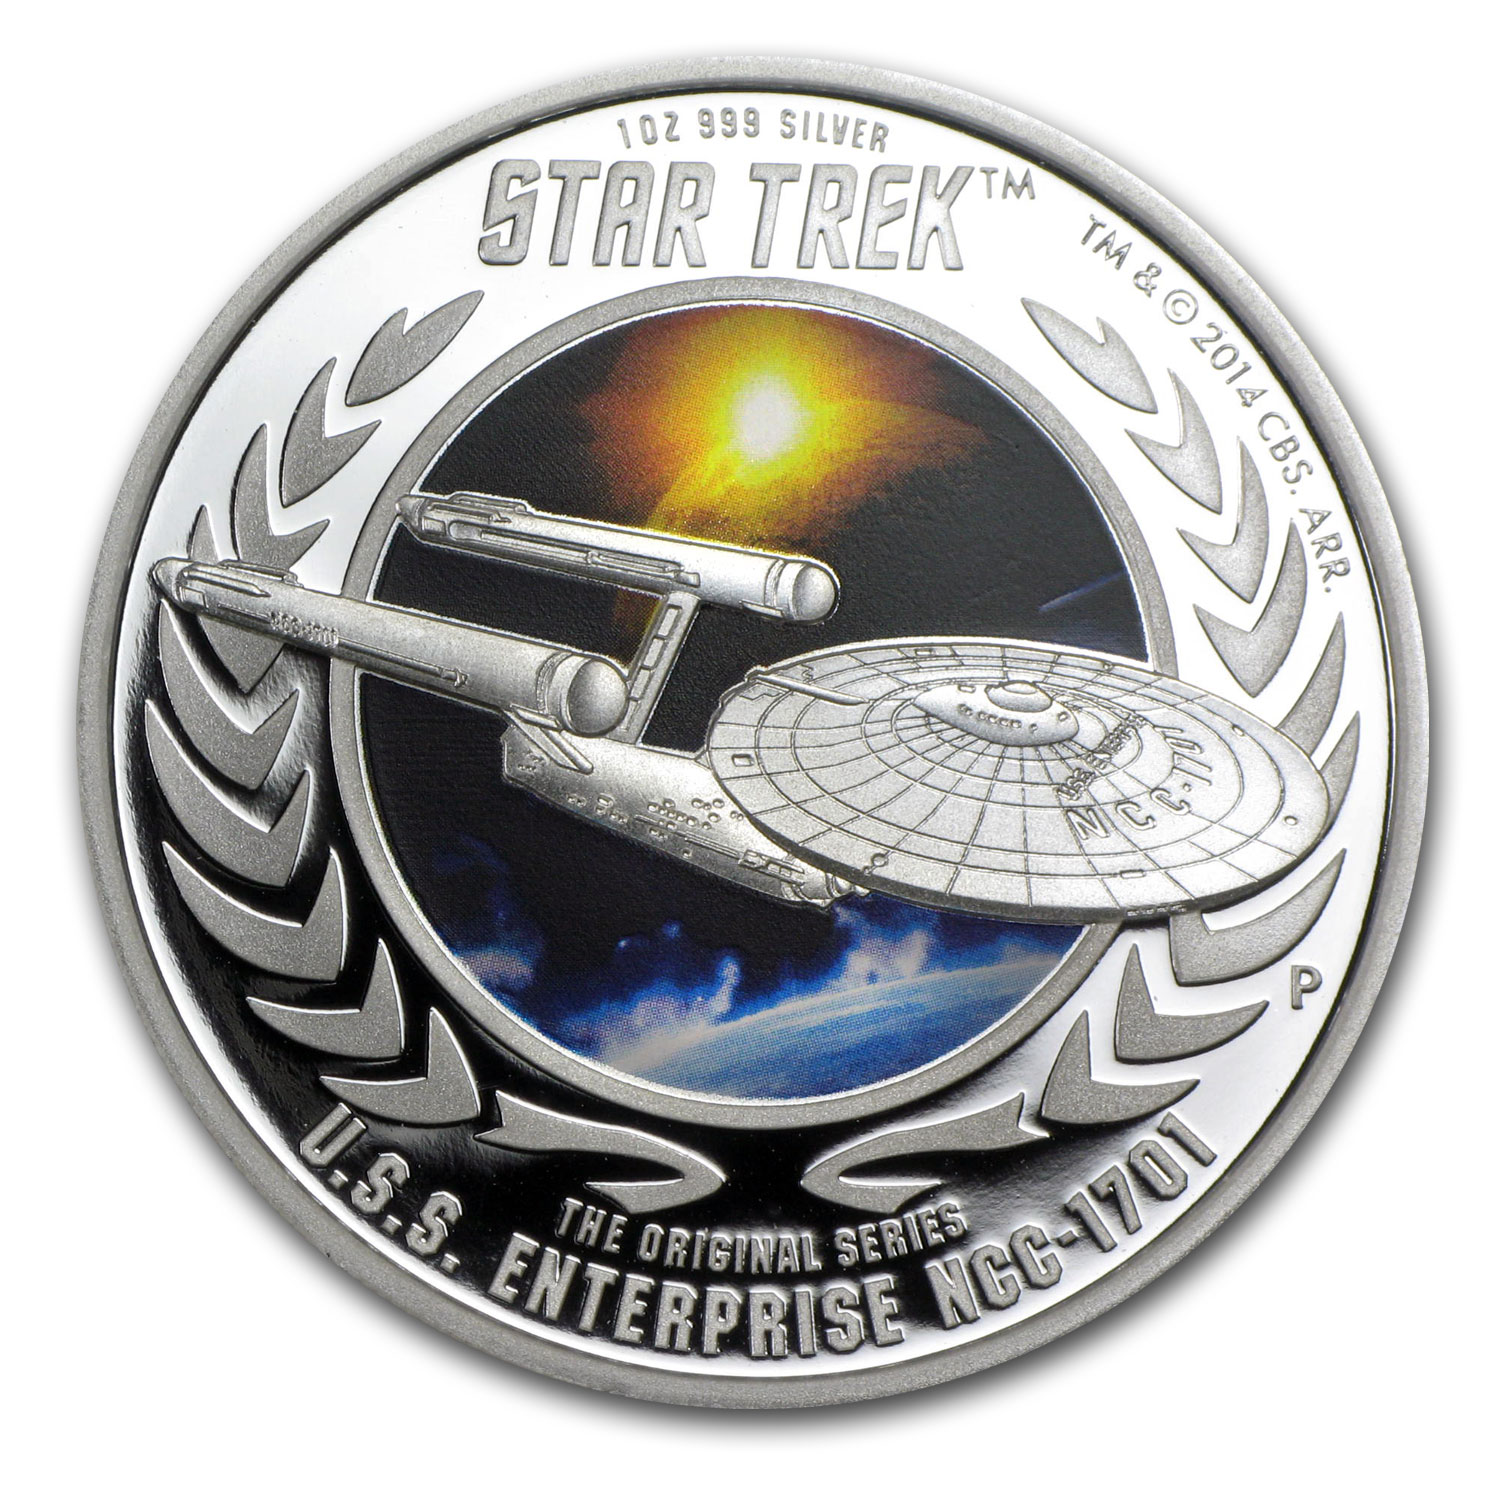 2015 Tuvalu 1 oz Silver Star Trek Colored Proof (Enterprise #1)